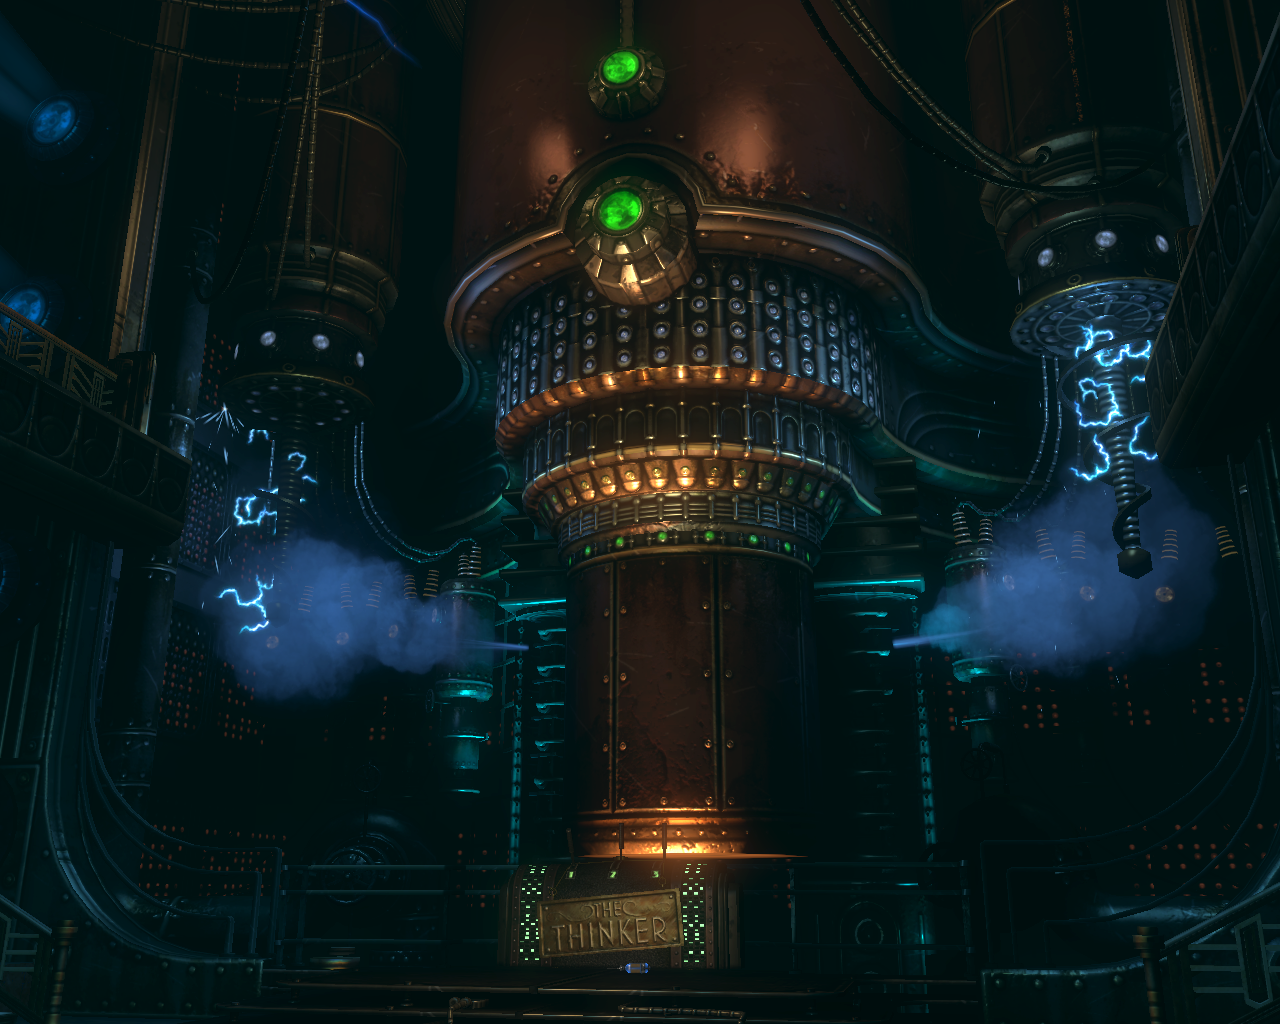 BioShock_2-The_Thinker_-_The_Thinker%27s_Core_f0366.png